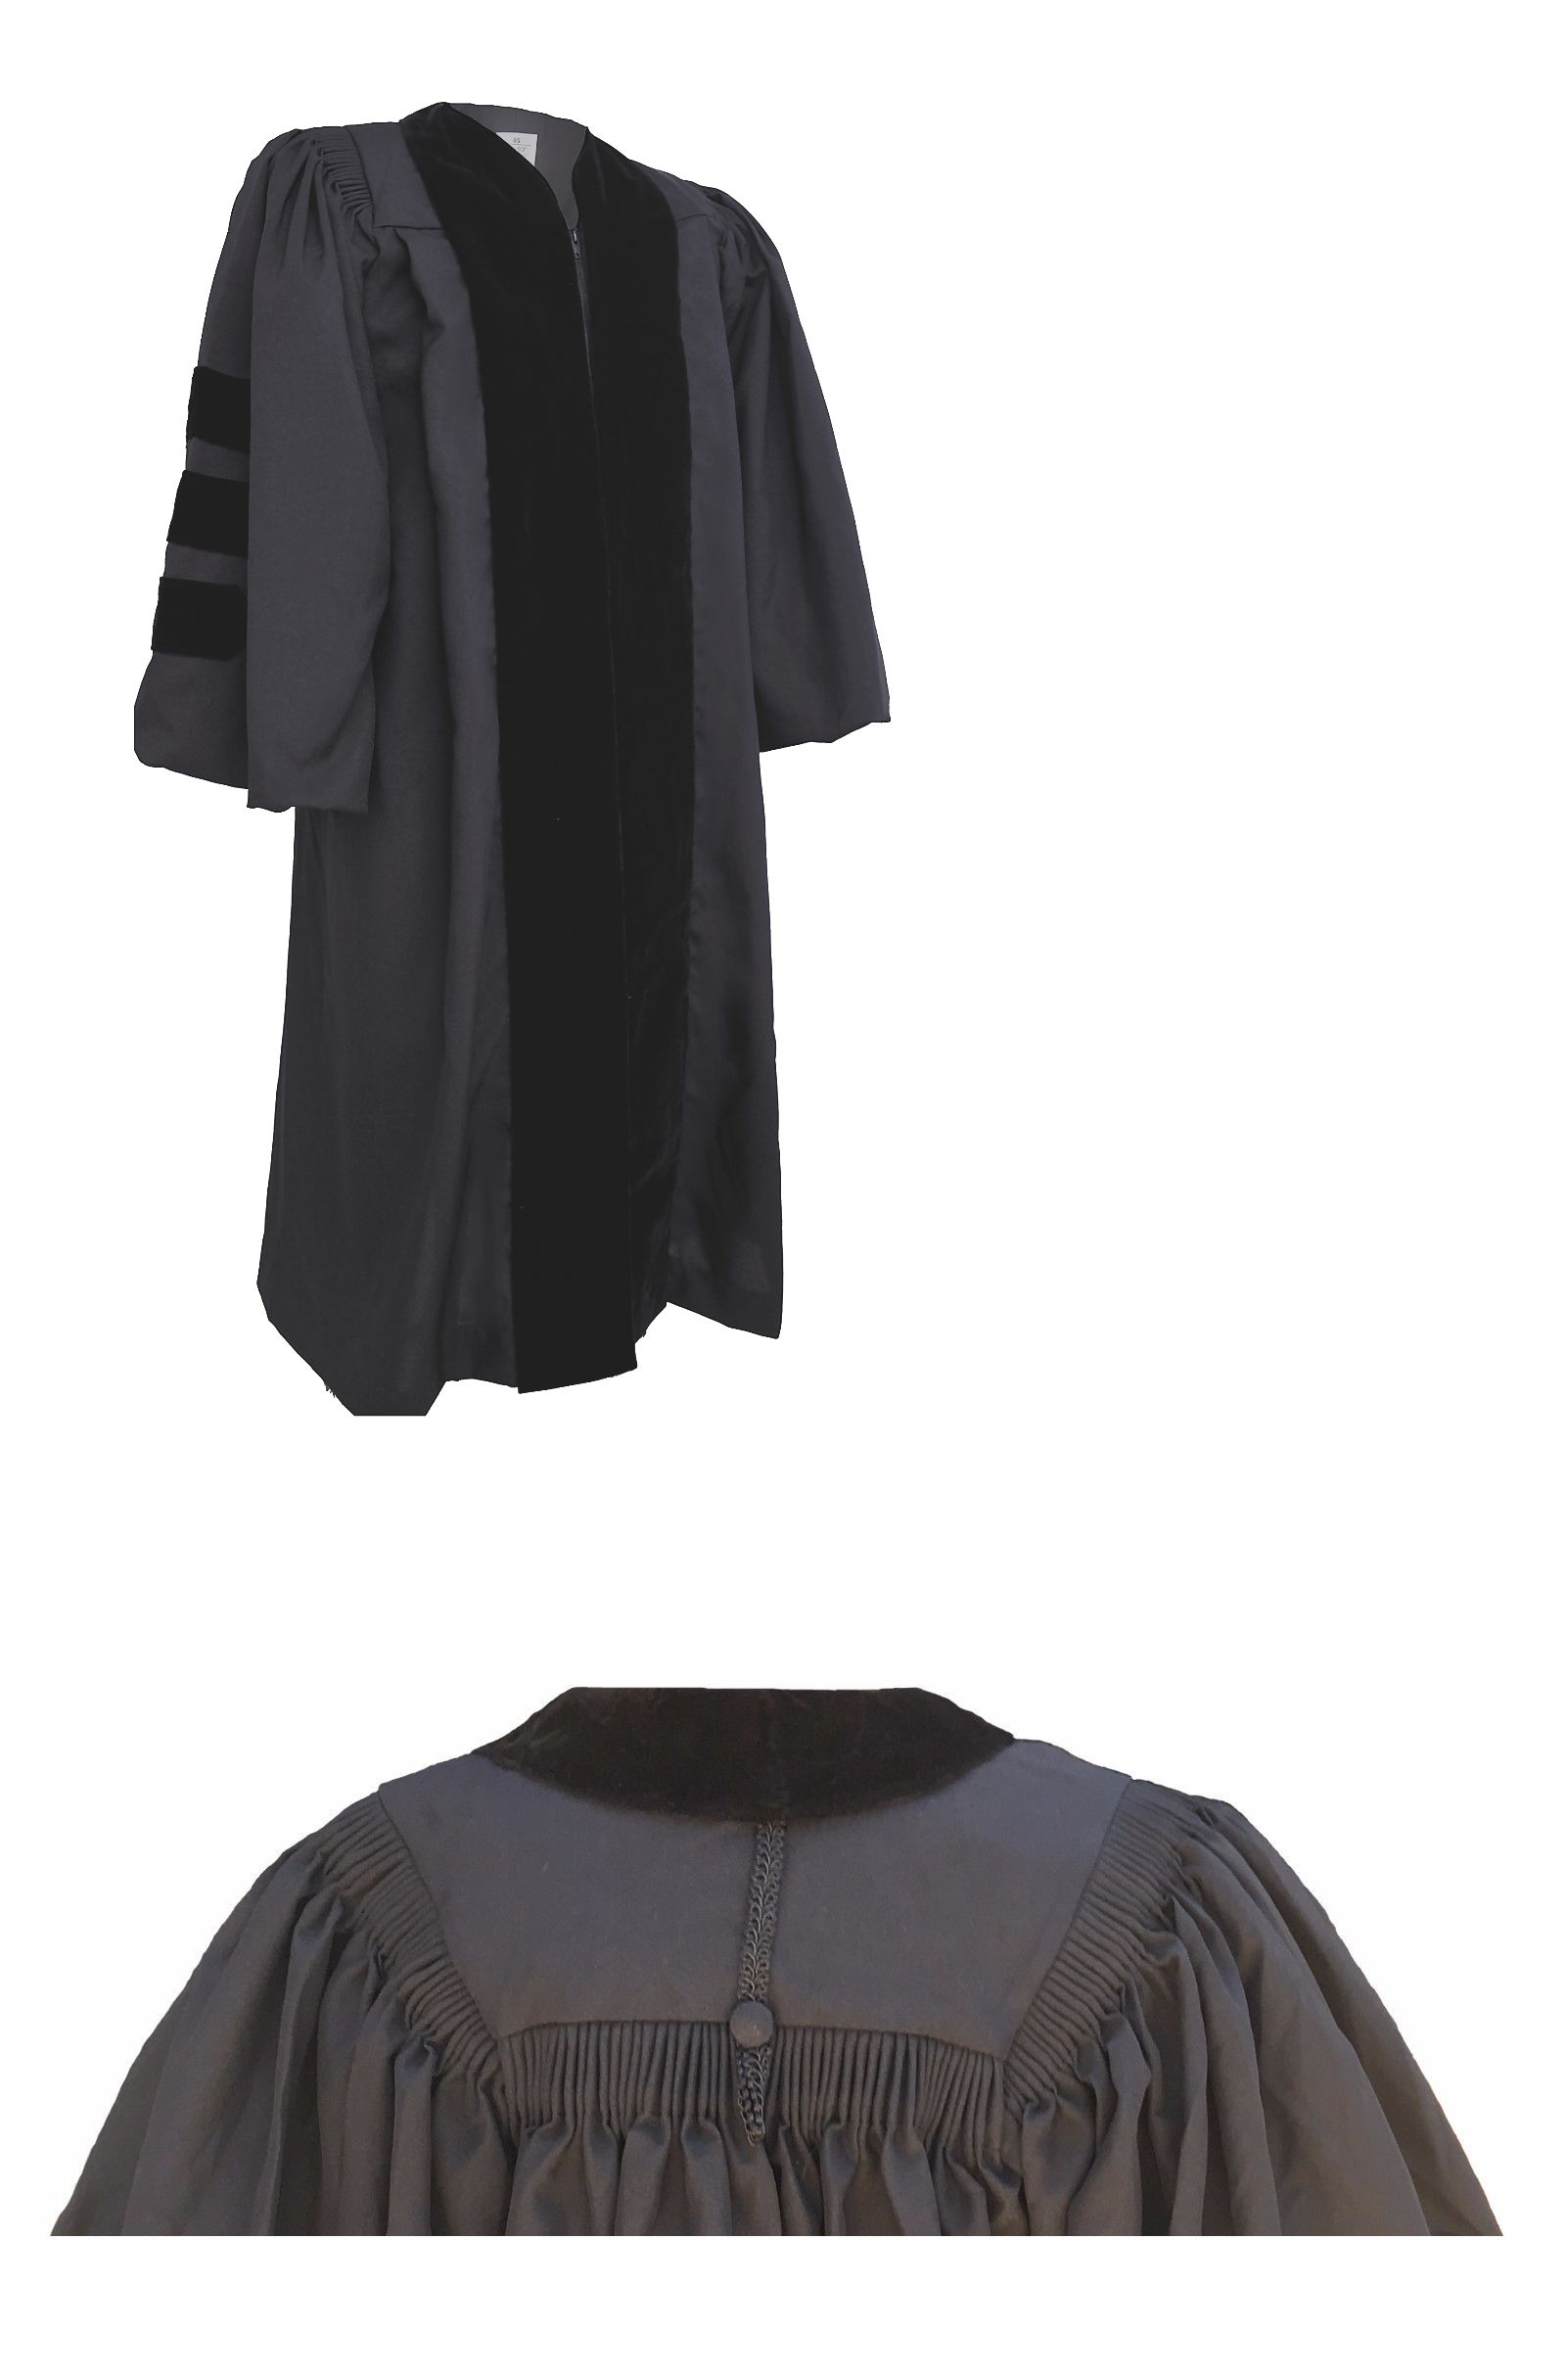 Other Uniforms and Work Clothing 163528: Deluxe Doctorate Doctoral ...